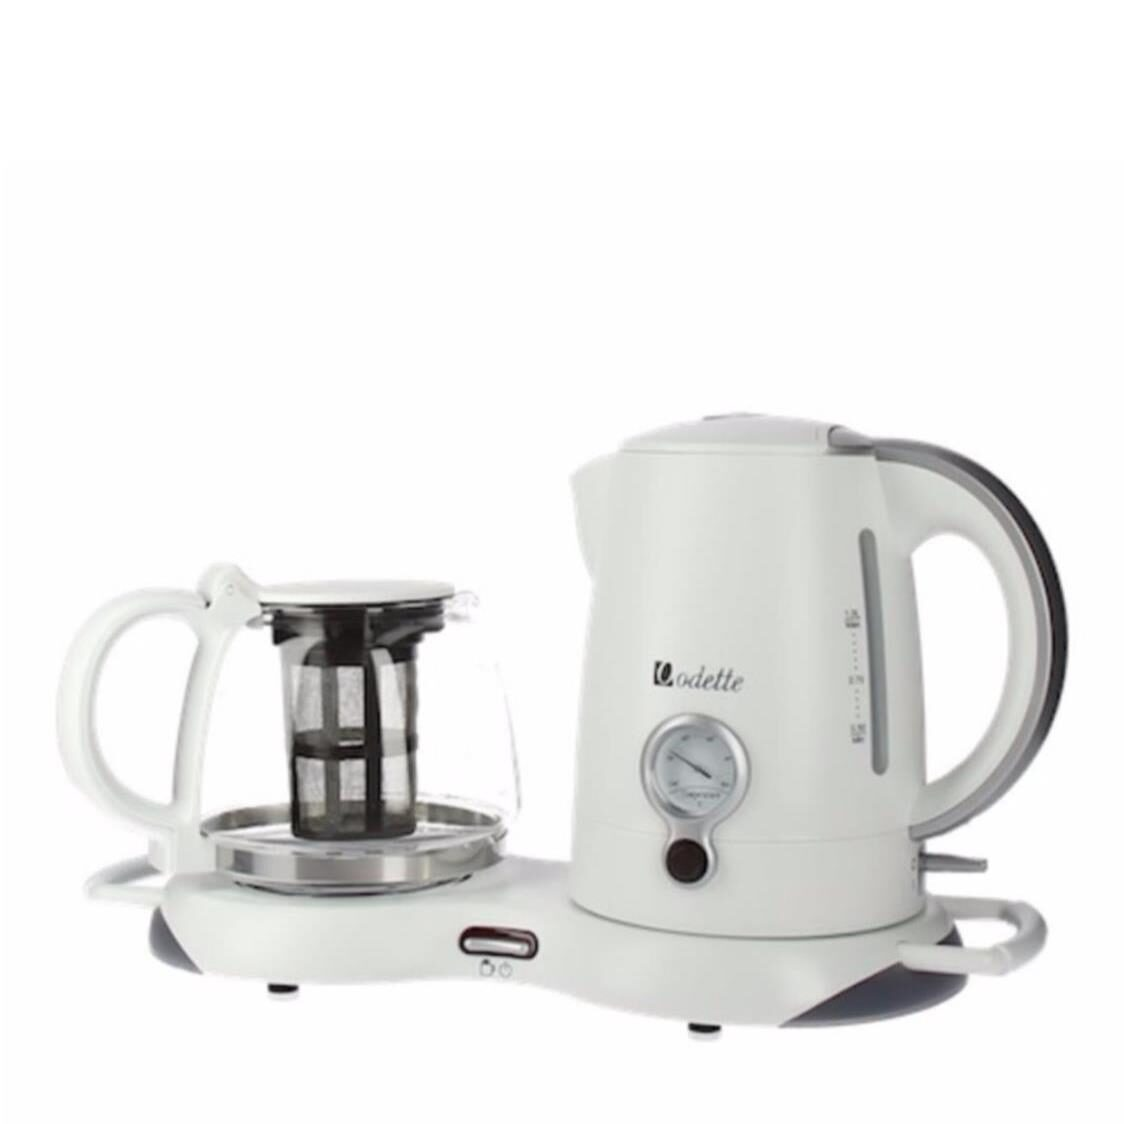 Odette Electric Kettle with Keep Warm Tea Tray White WK8287TR